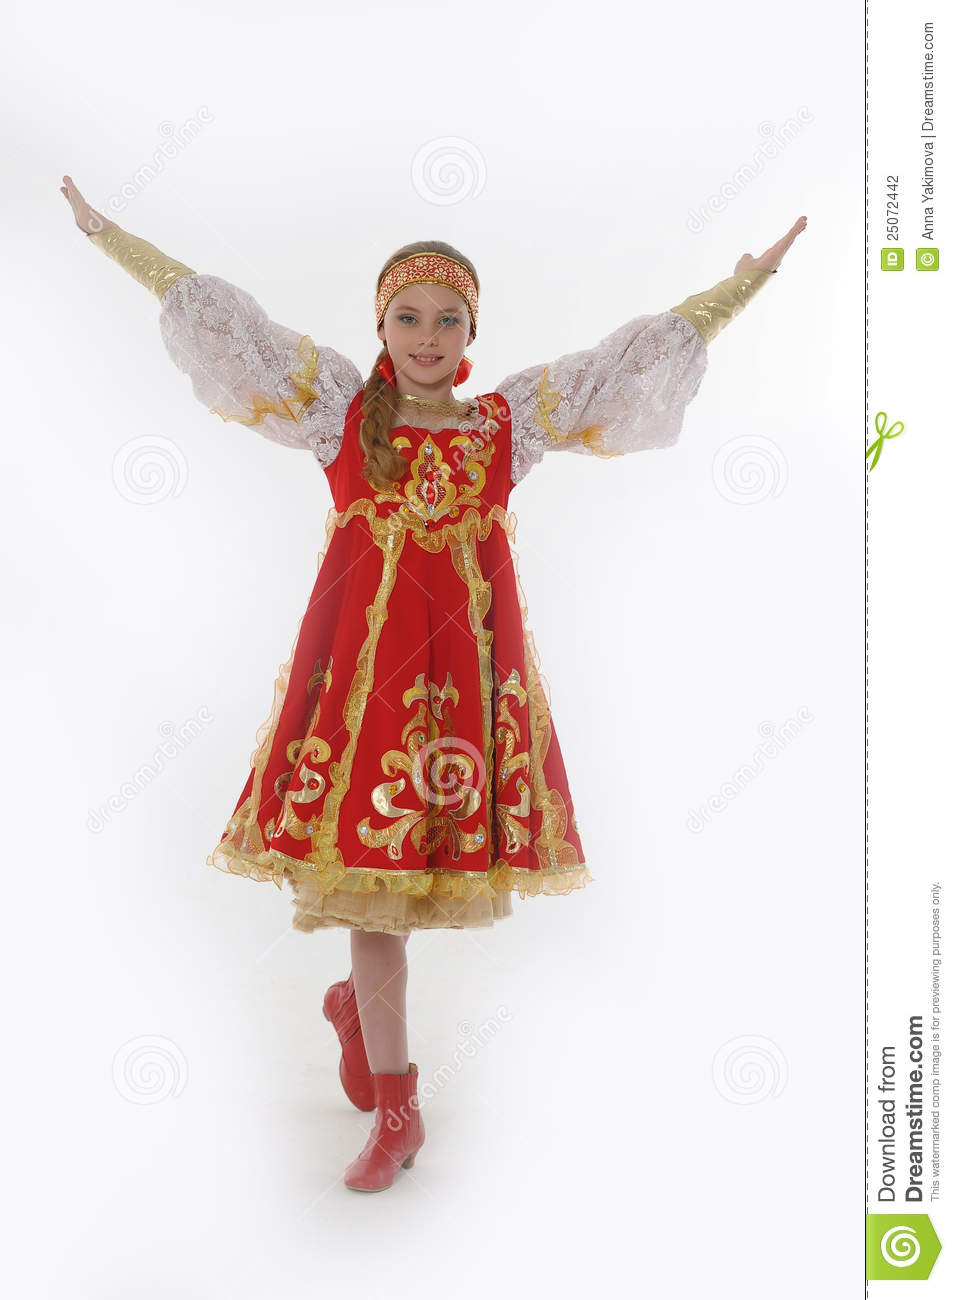 Tresse Enfant Fille Dans Le Costume Russe De Danse Photo Stock - Image